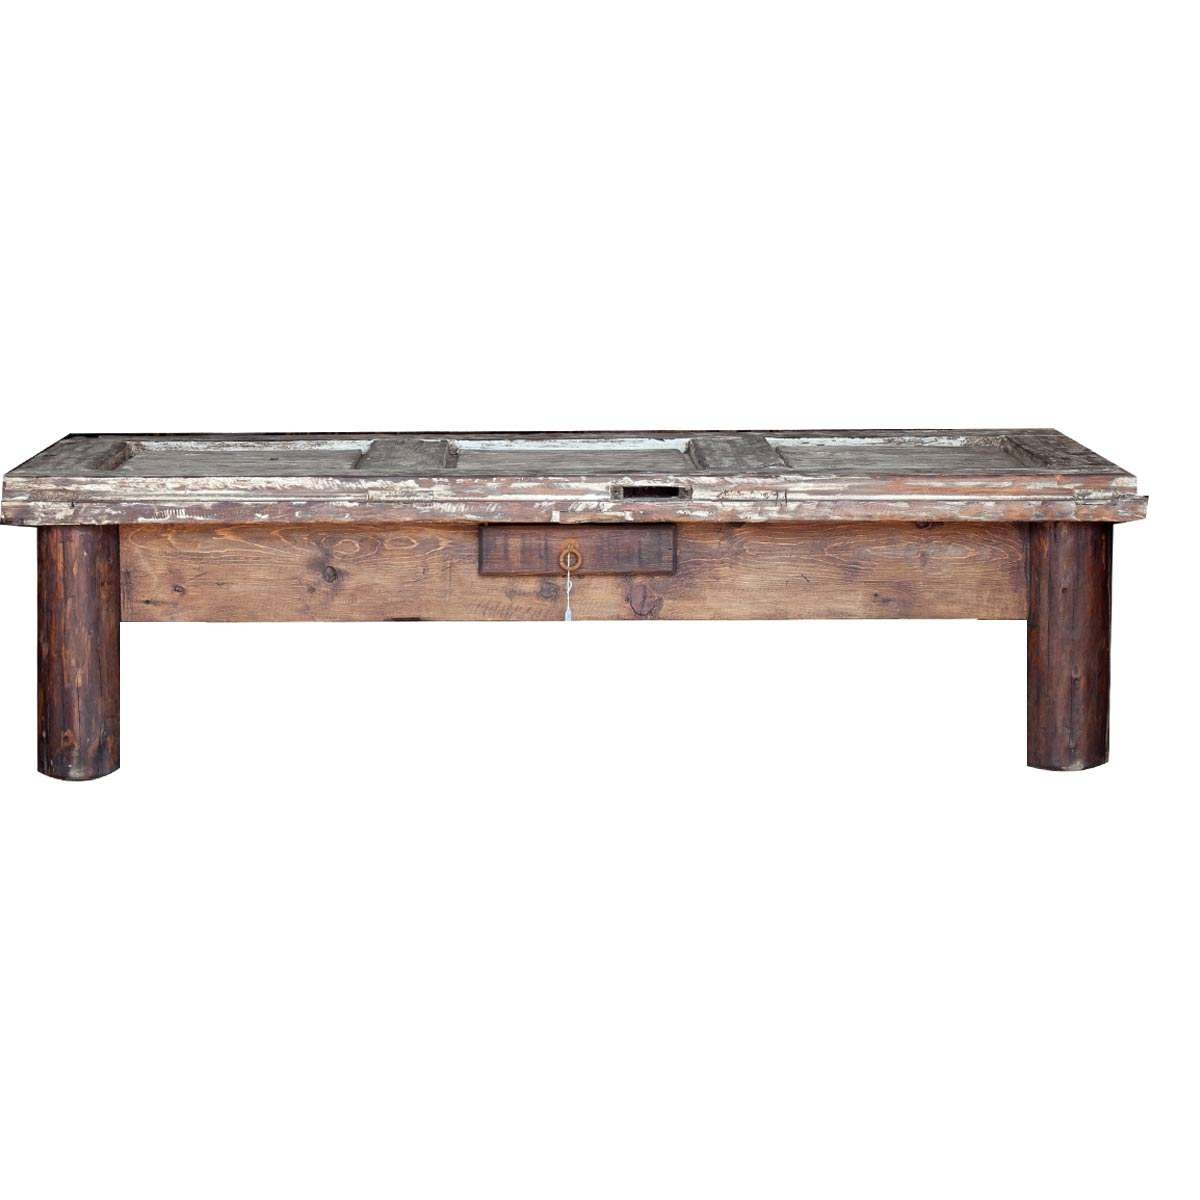 Well Known Antique Rustic Coffee Tables In Rustic Coffee Tables (View 4 of 20)